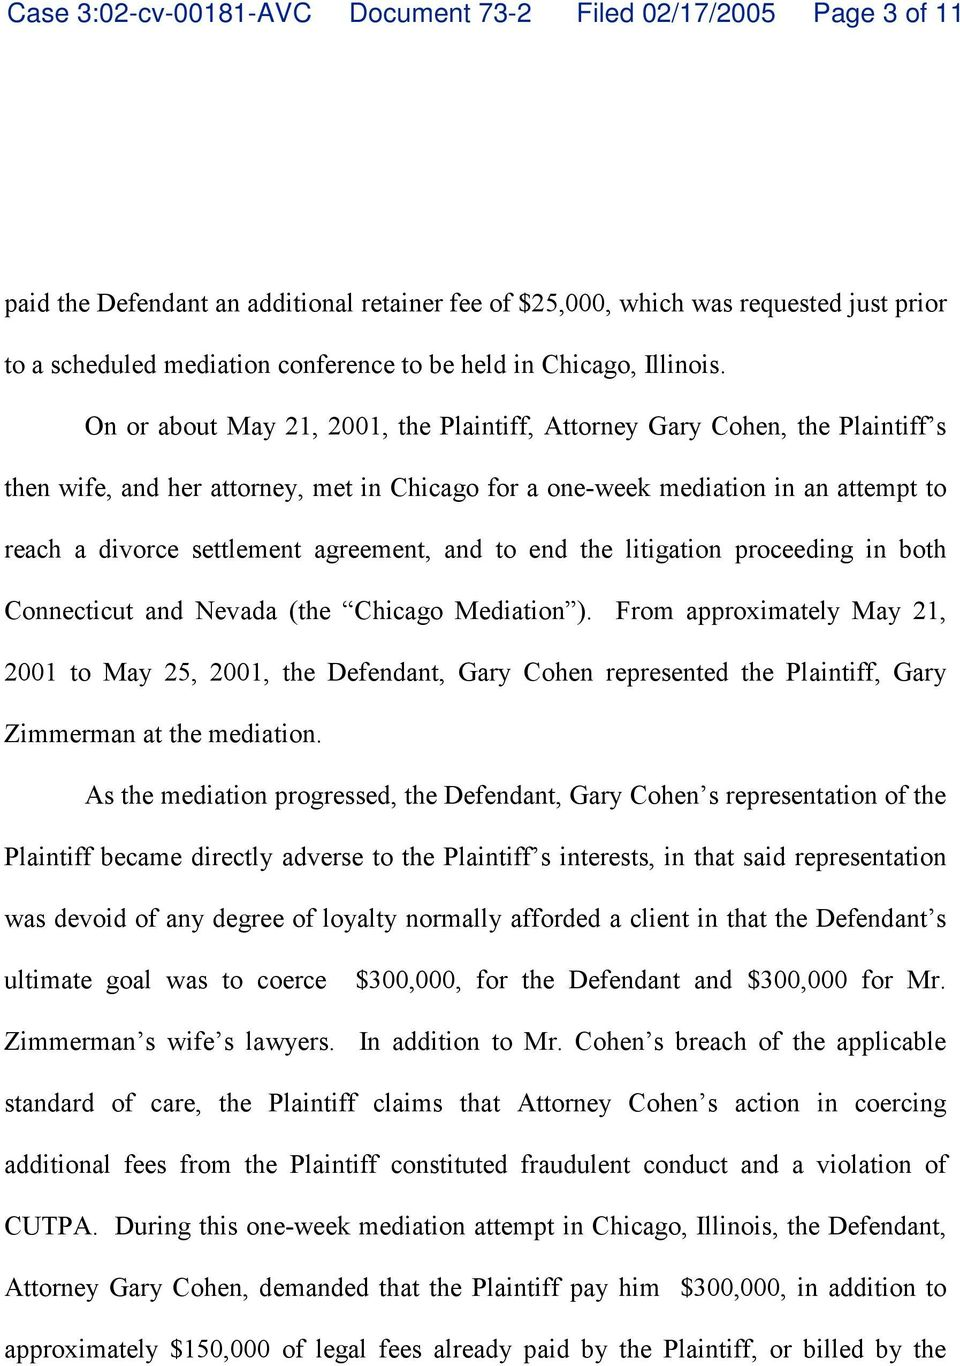 On or about May 21, 2001, the Plaintiff, Atorney Gary Cohen, the Plaintif s then wife, and her attorney, met in Chicago for a one-week mediation in an attempt to reach a divorce settlement agreement,